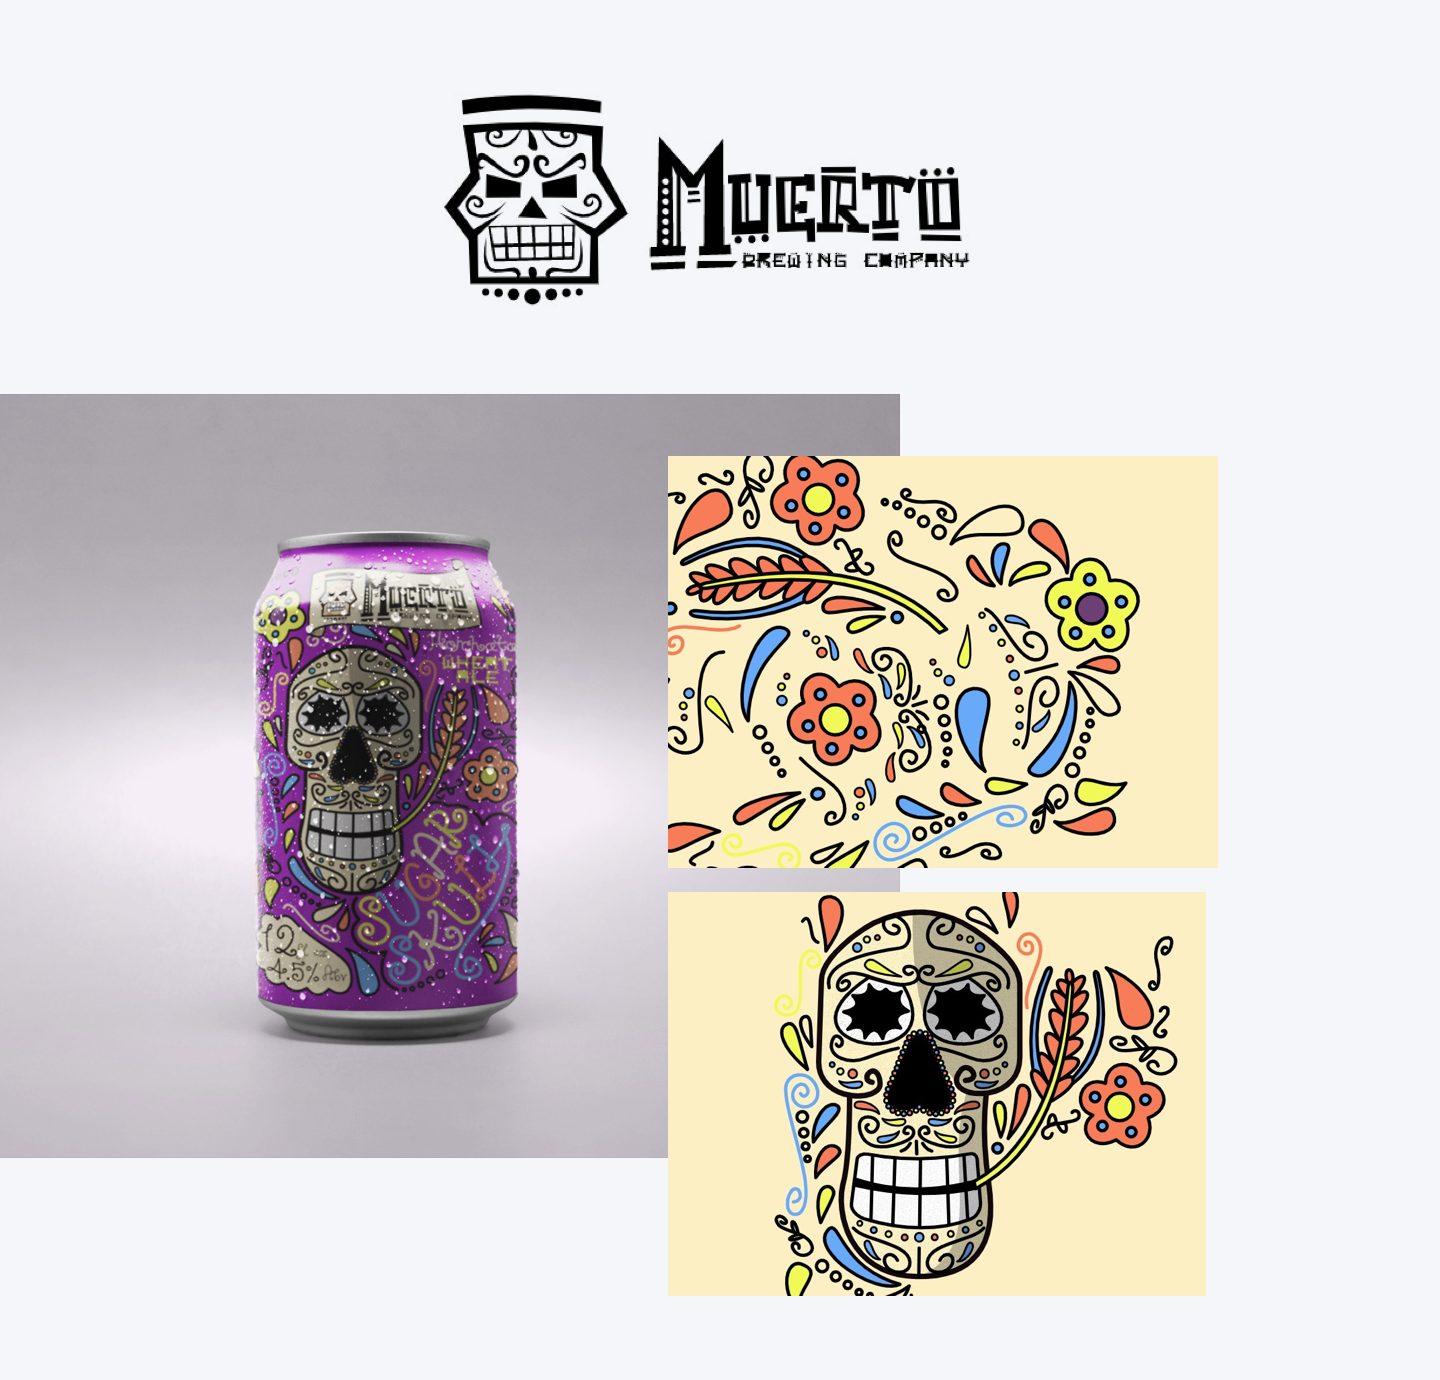 Blogpost–Dribbble-Contest-Muerto Brewing